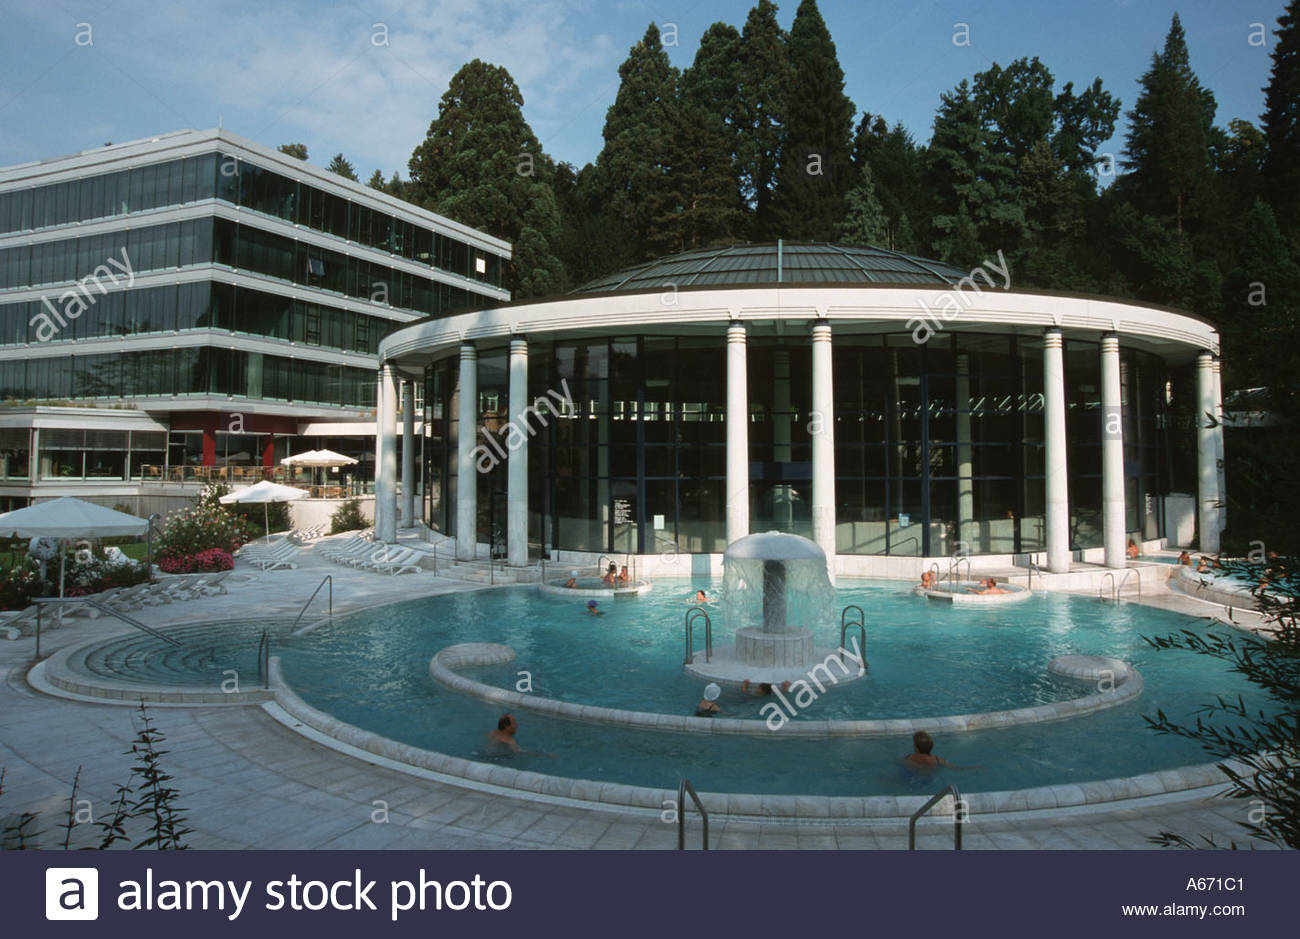 Caracalla Therme The Black Forest, Schwarzwald Black Forest Baden Baden Caracalla Thermal Baths Stock ...